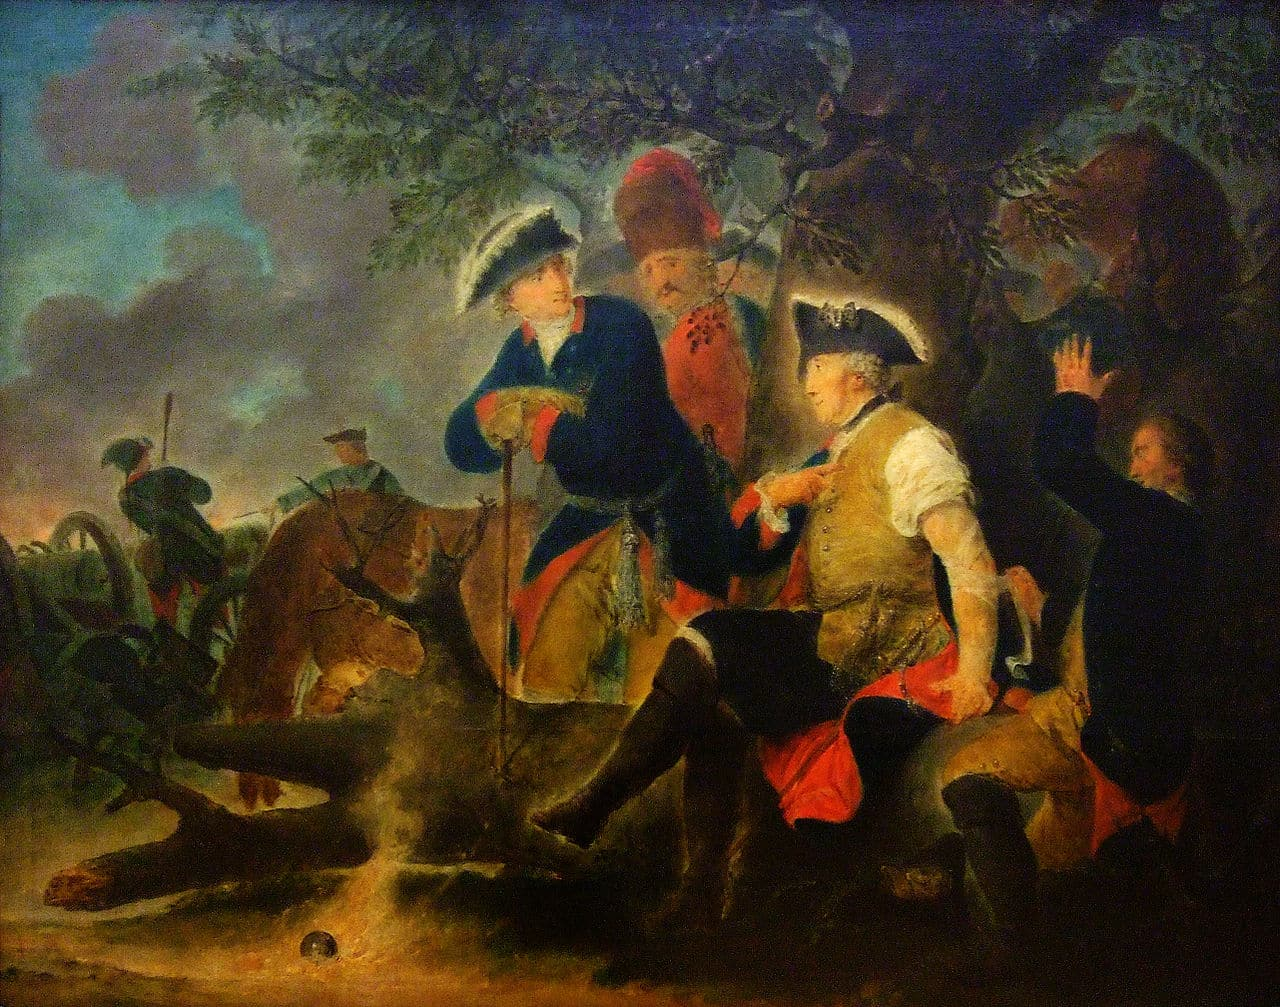 Prussian King Frederick the Great in 1778 during the 'Potato War' by Bernhard Rode